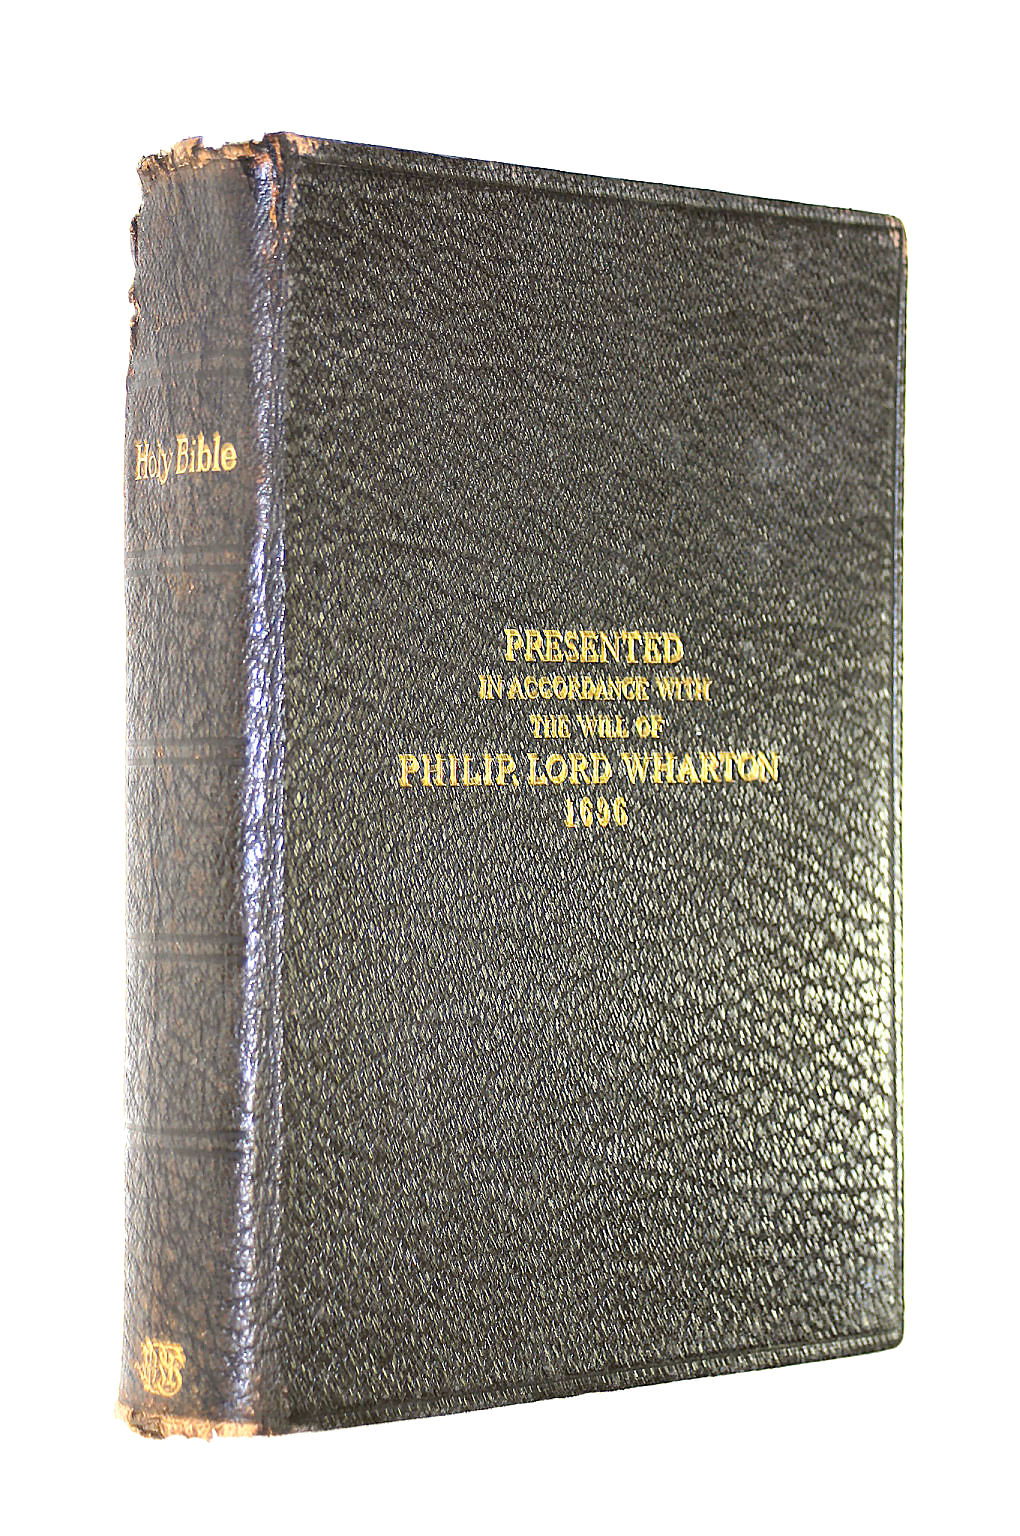 Image for The Holy Bible Containing The Old & New Testaments